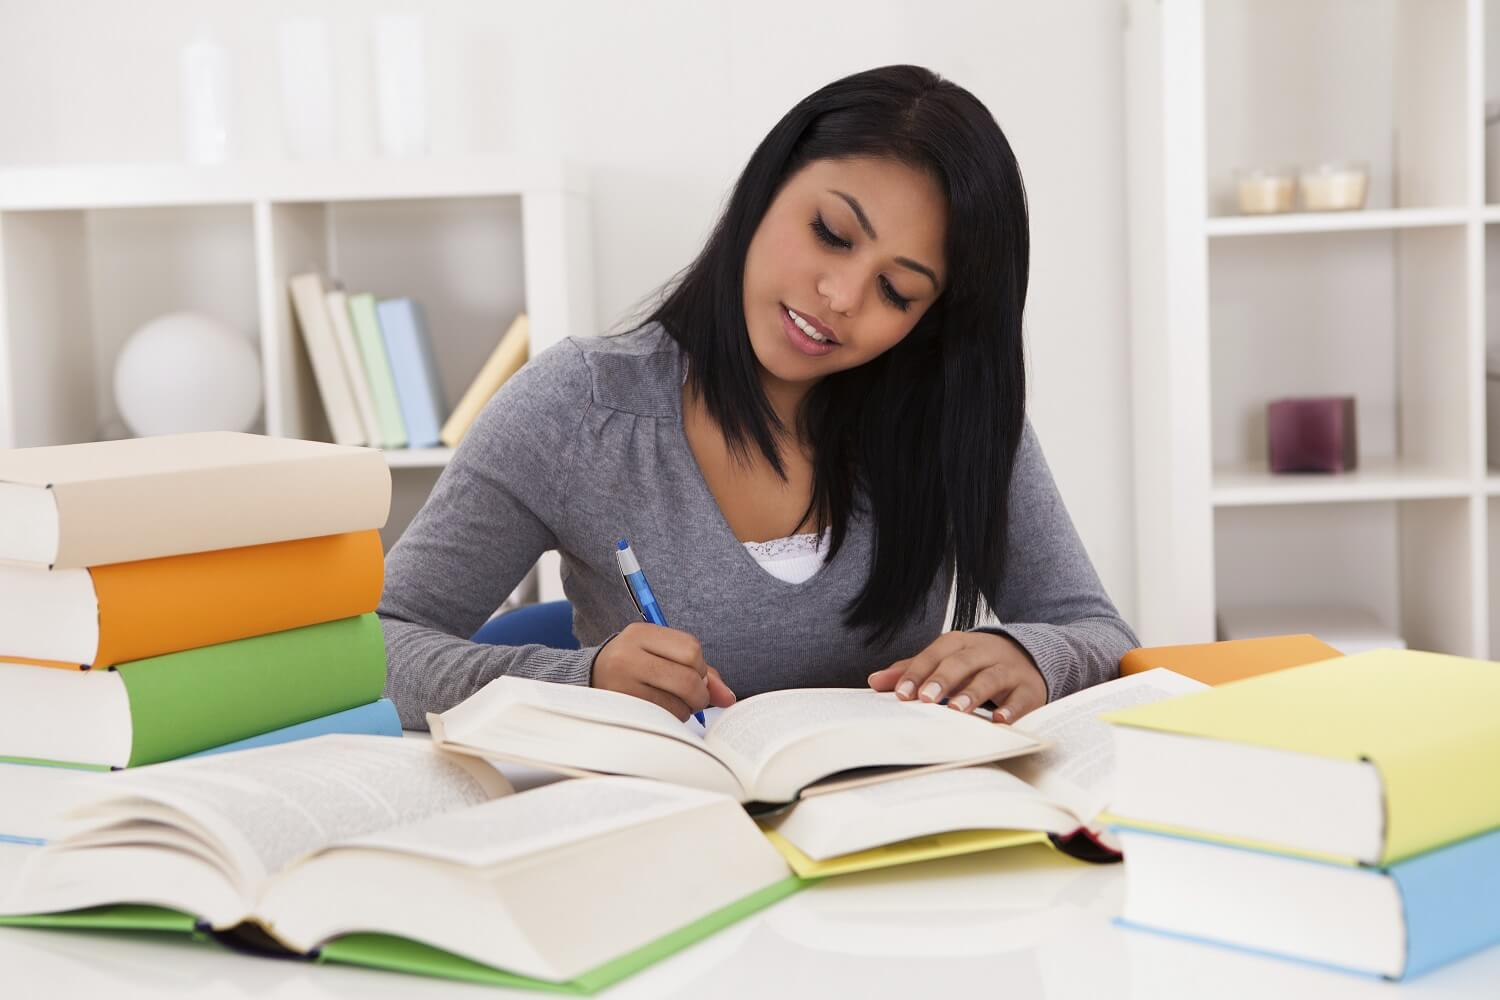 50 Tricks to Study Better, Faster and with Less Stress